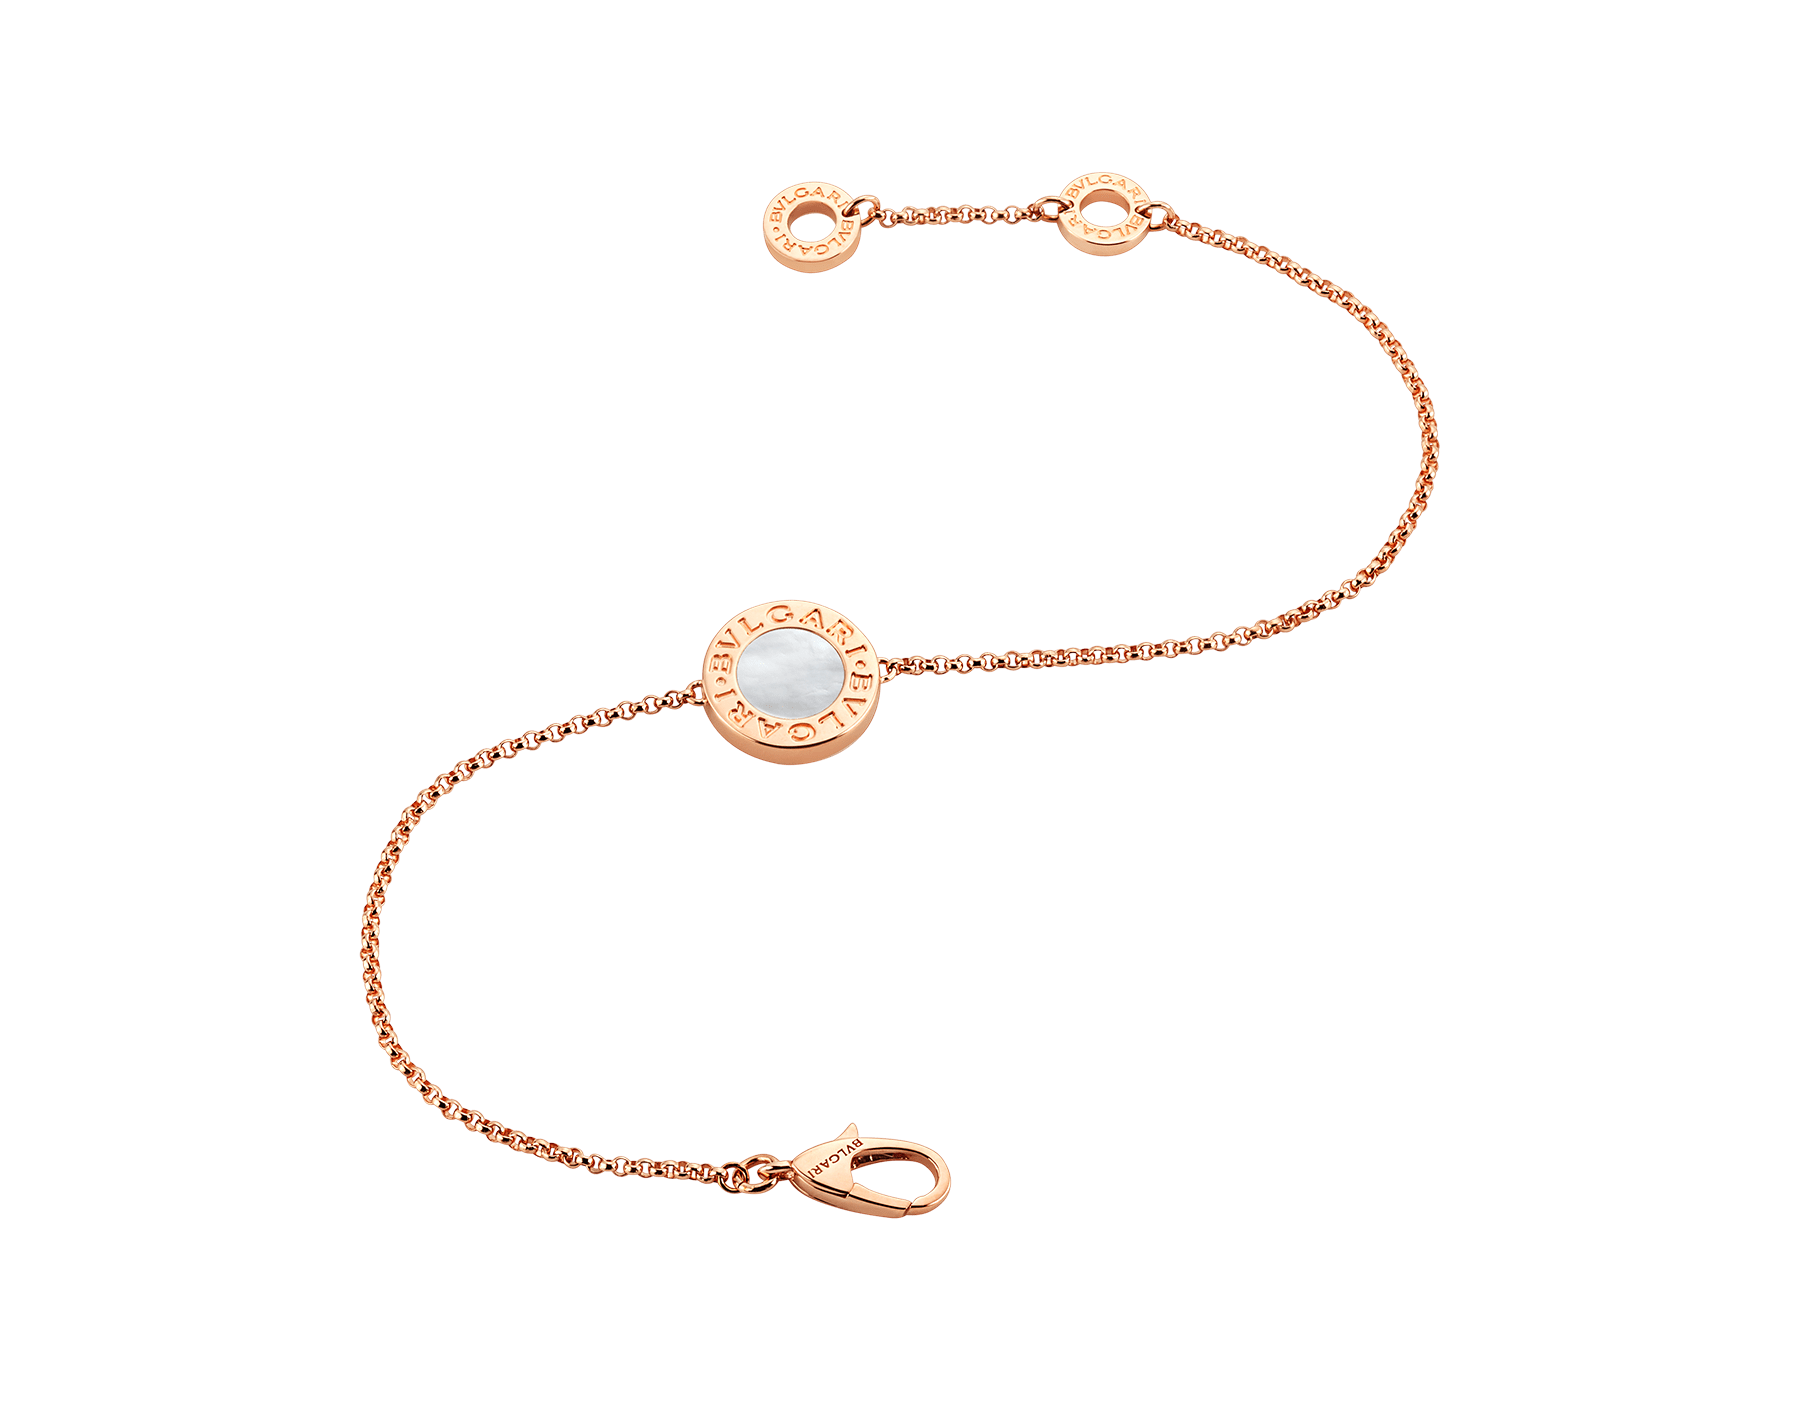 BVLGARI BVLGARI 18 kt rose gold bracelet set with mother-of-pearl elements BR857192 image 2